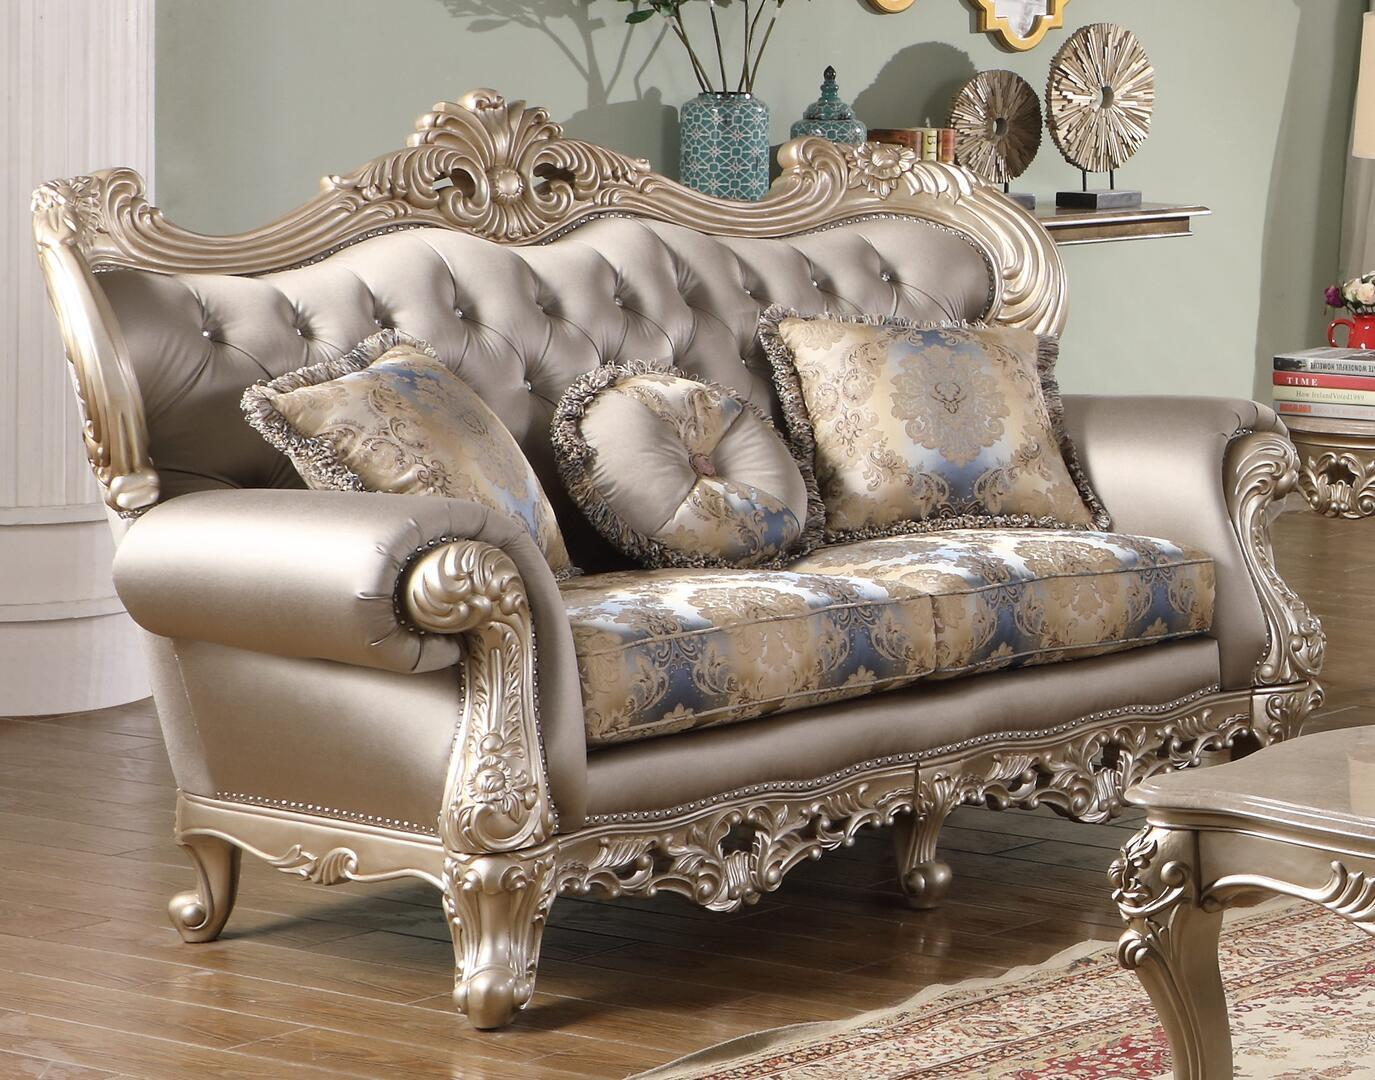 Transitional Silver Faux Leather Loveseat 1 pcs Cosmos Furniture 3036SIARI